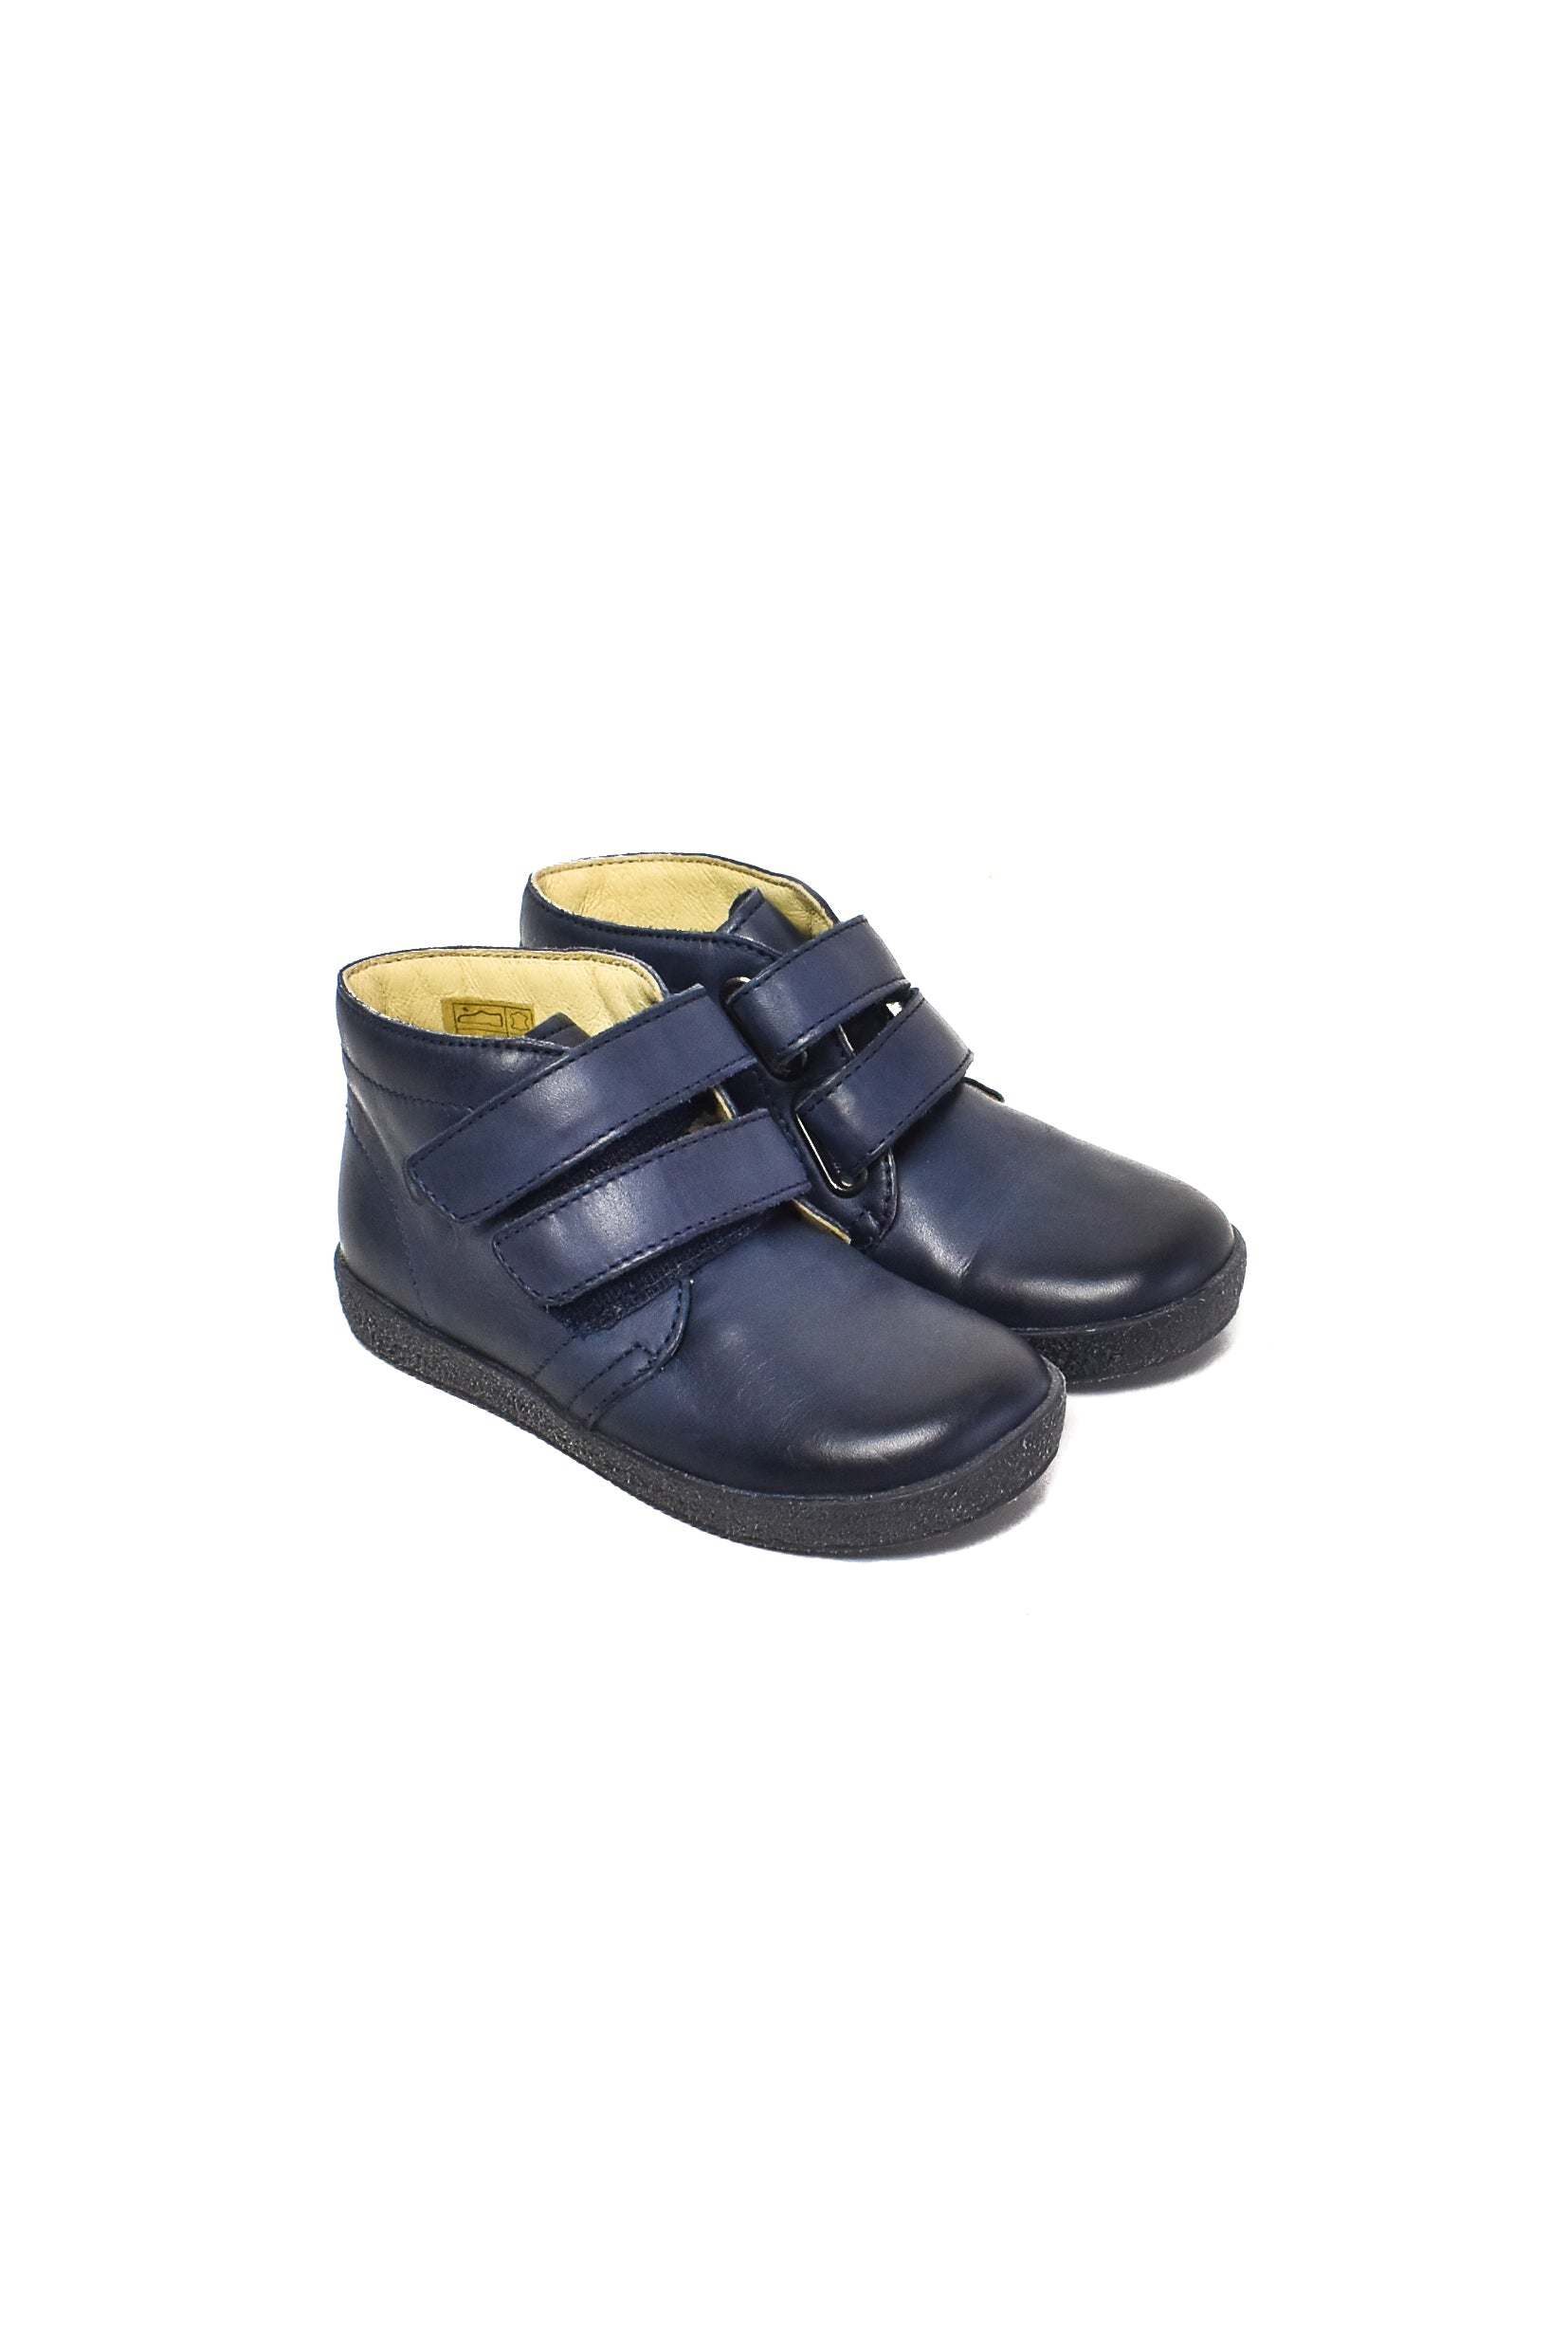 10007033 Falcotto Kids~Boots 3T (EU 25) at Retykle